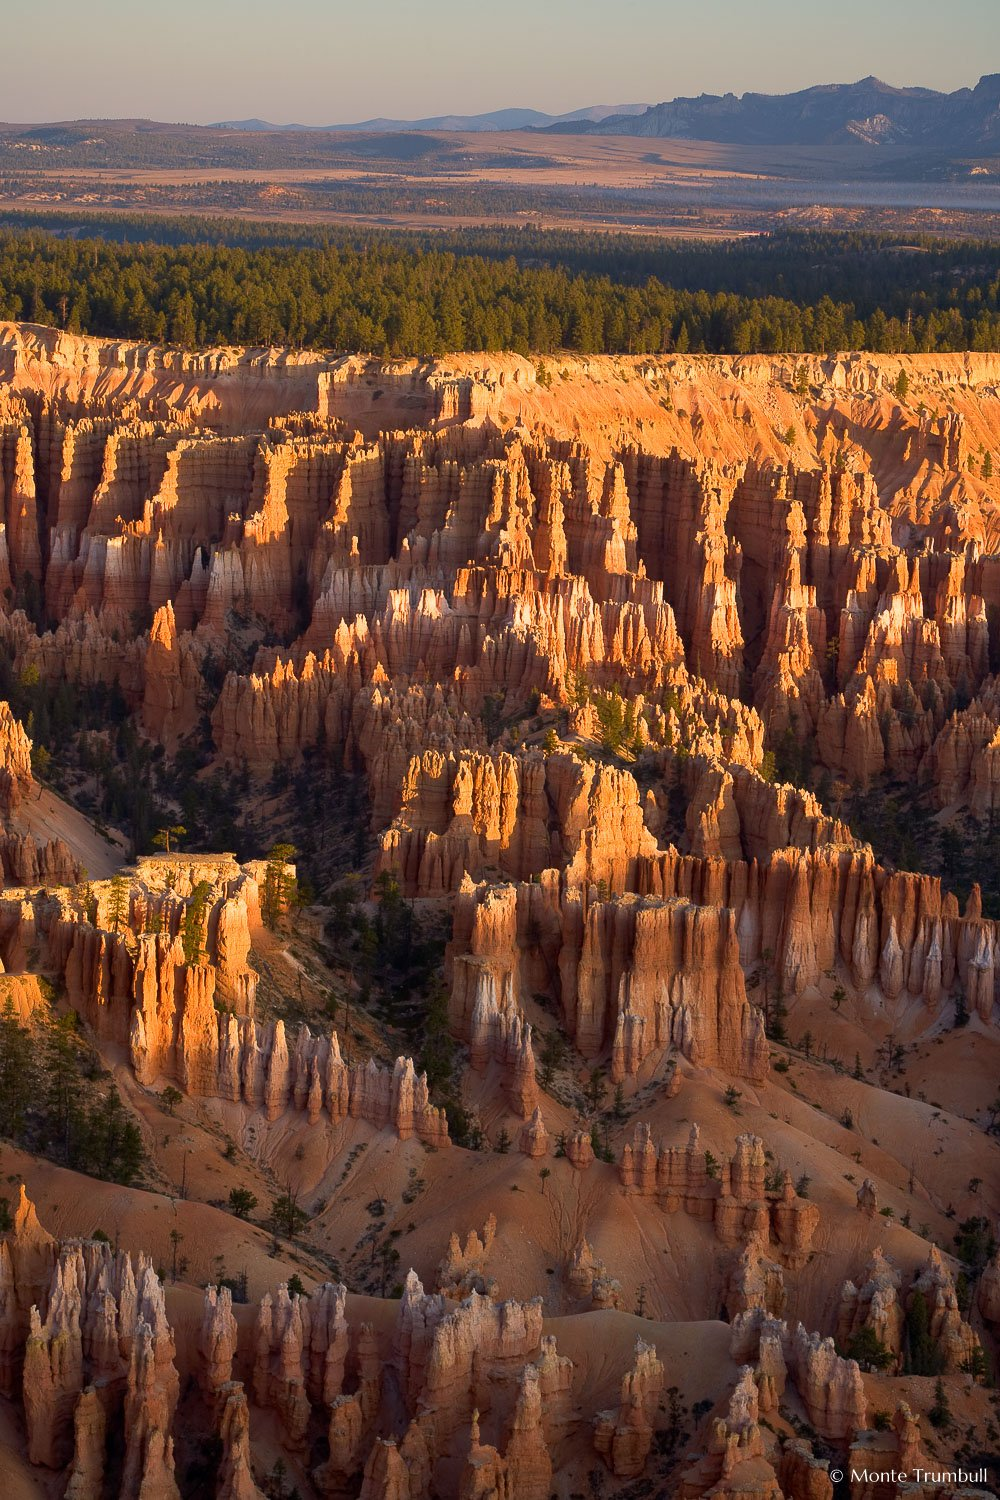 MT-20071108-071615-0014-Edit-Utah-Bryce-Canyon-National-Park-mountains-sunrise.jpg